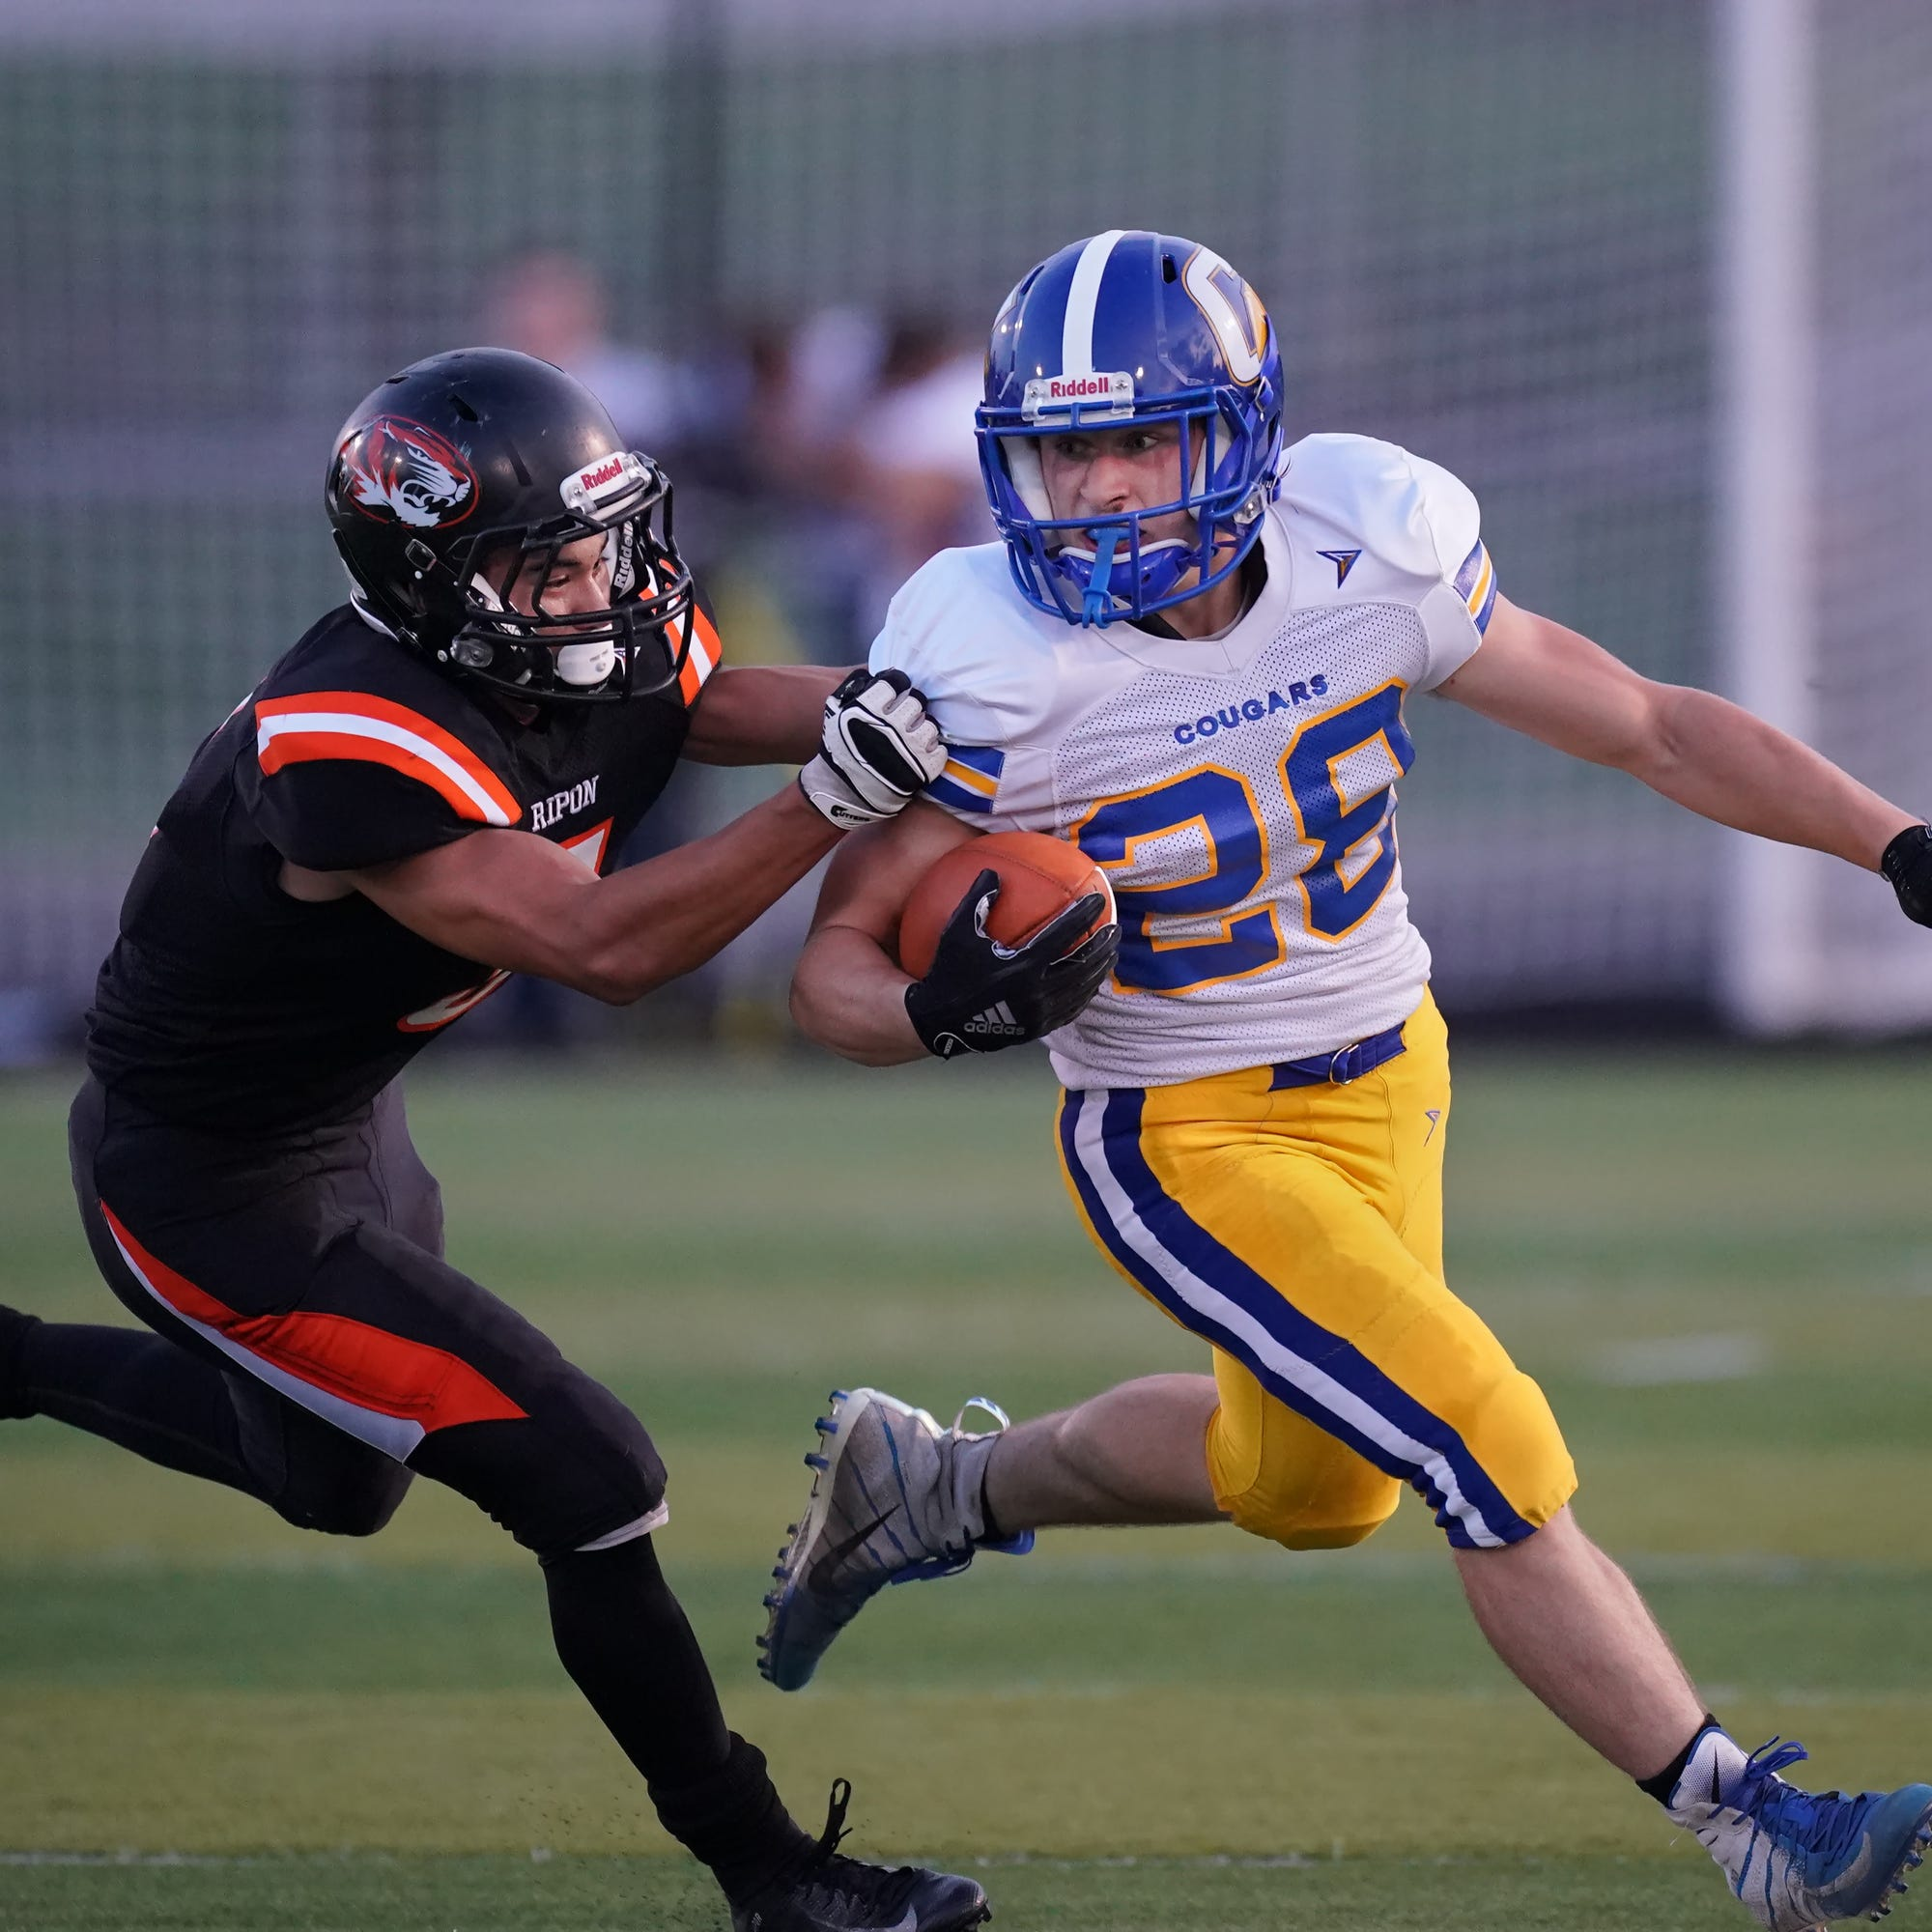 Key clashes in Flyway, ECC highlight Week 4 high school football schedule